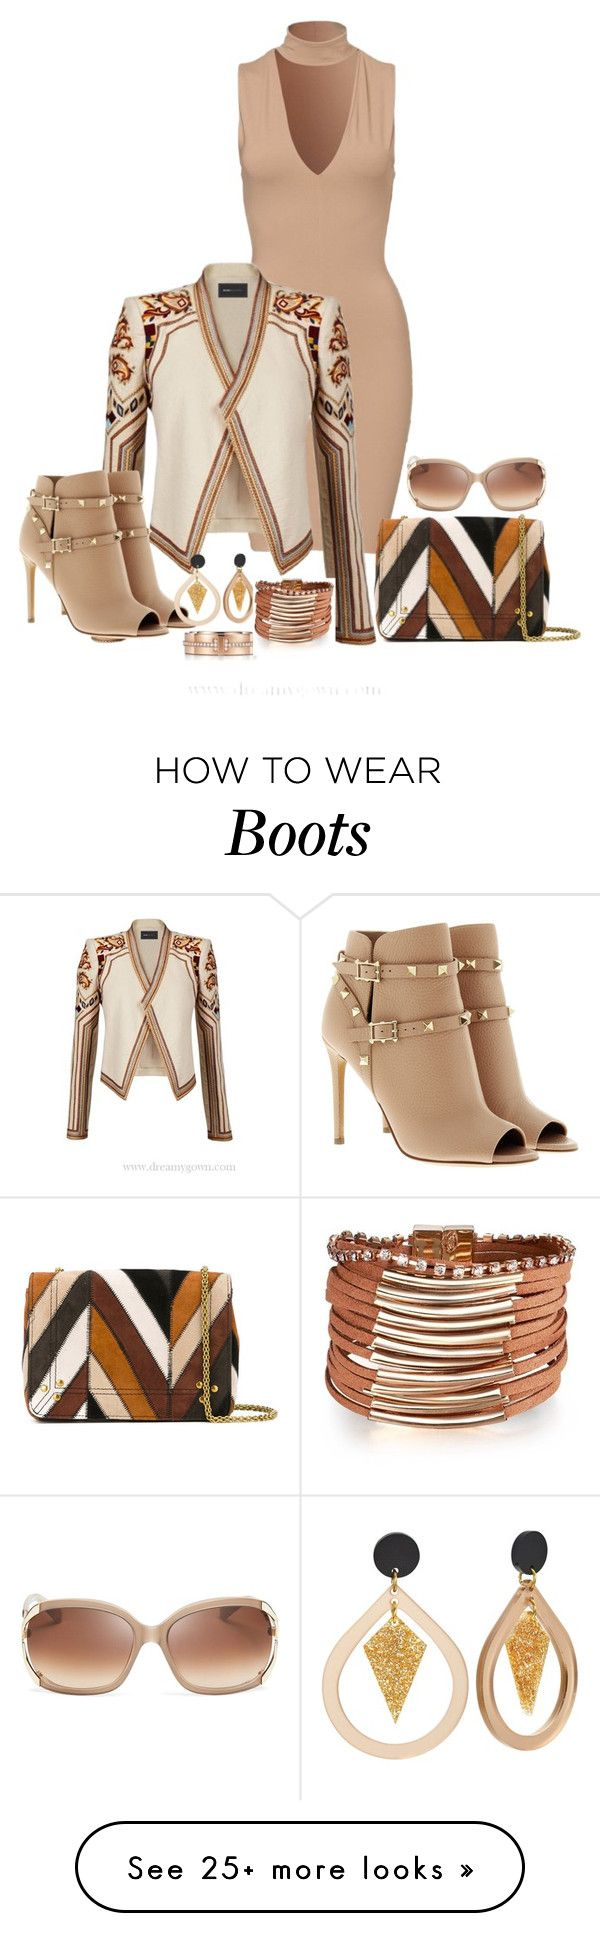 """""""Styling"""" by freida-adams on Polyvore featuring BCBGMAXAZRIA, Valentino, Jérôme Dreyfuss, Tiffany & Co. and Kate Spade"""